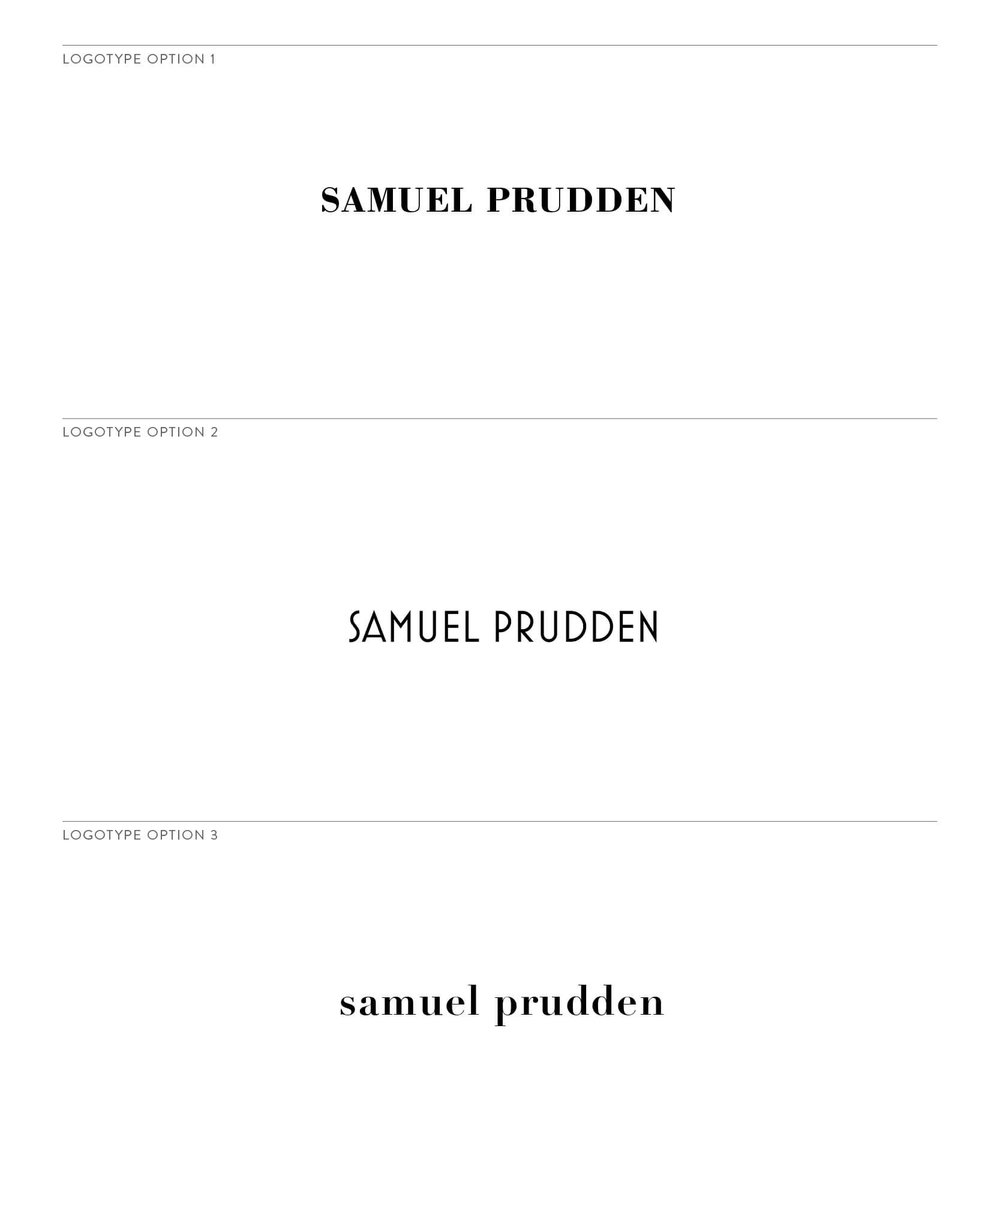 Samuel Prudden logotype options by The Qurious Effect. A brand identity and Squarespace web design studio.